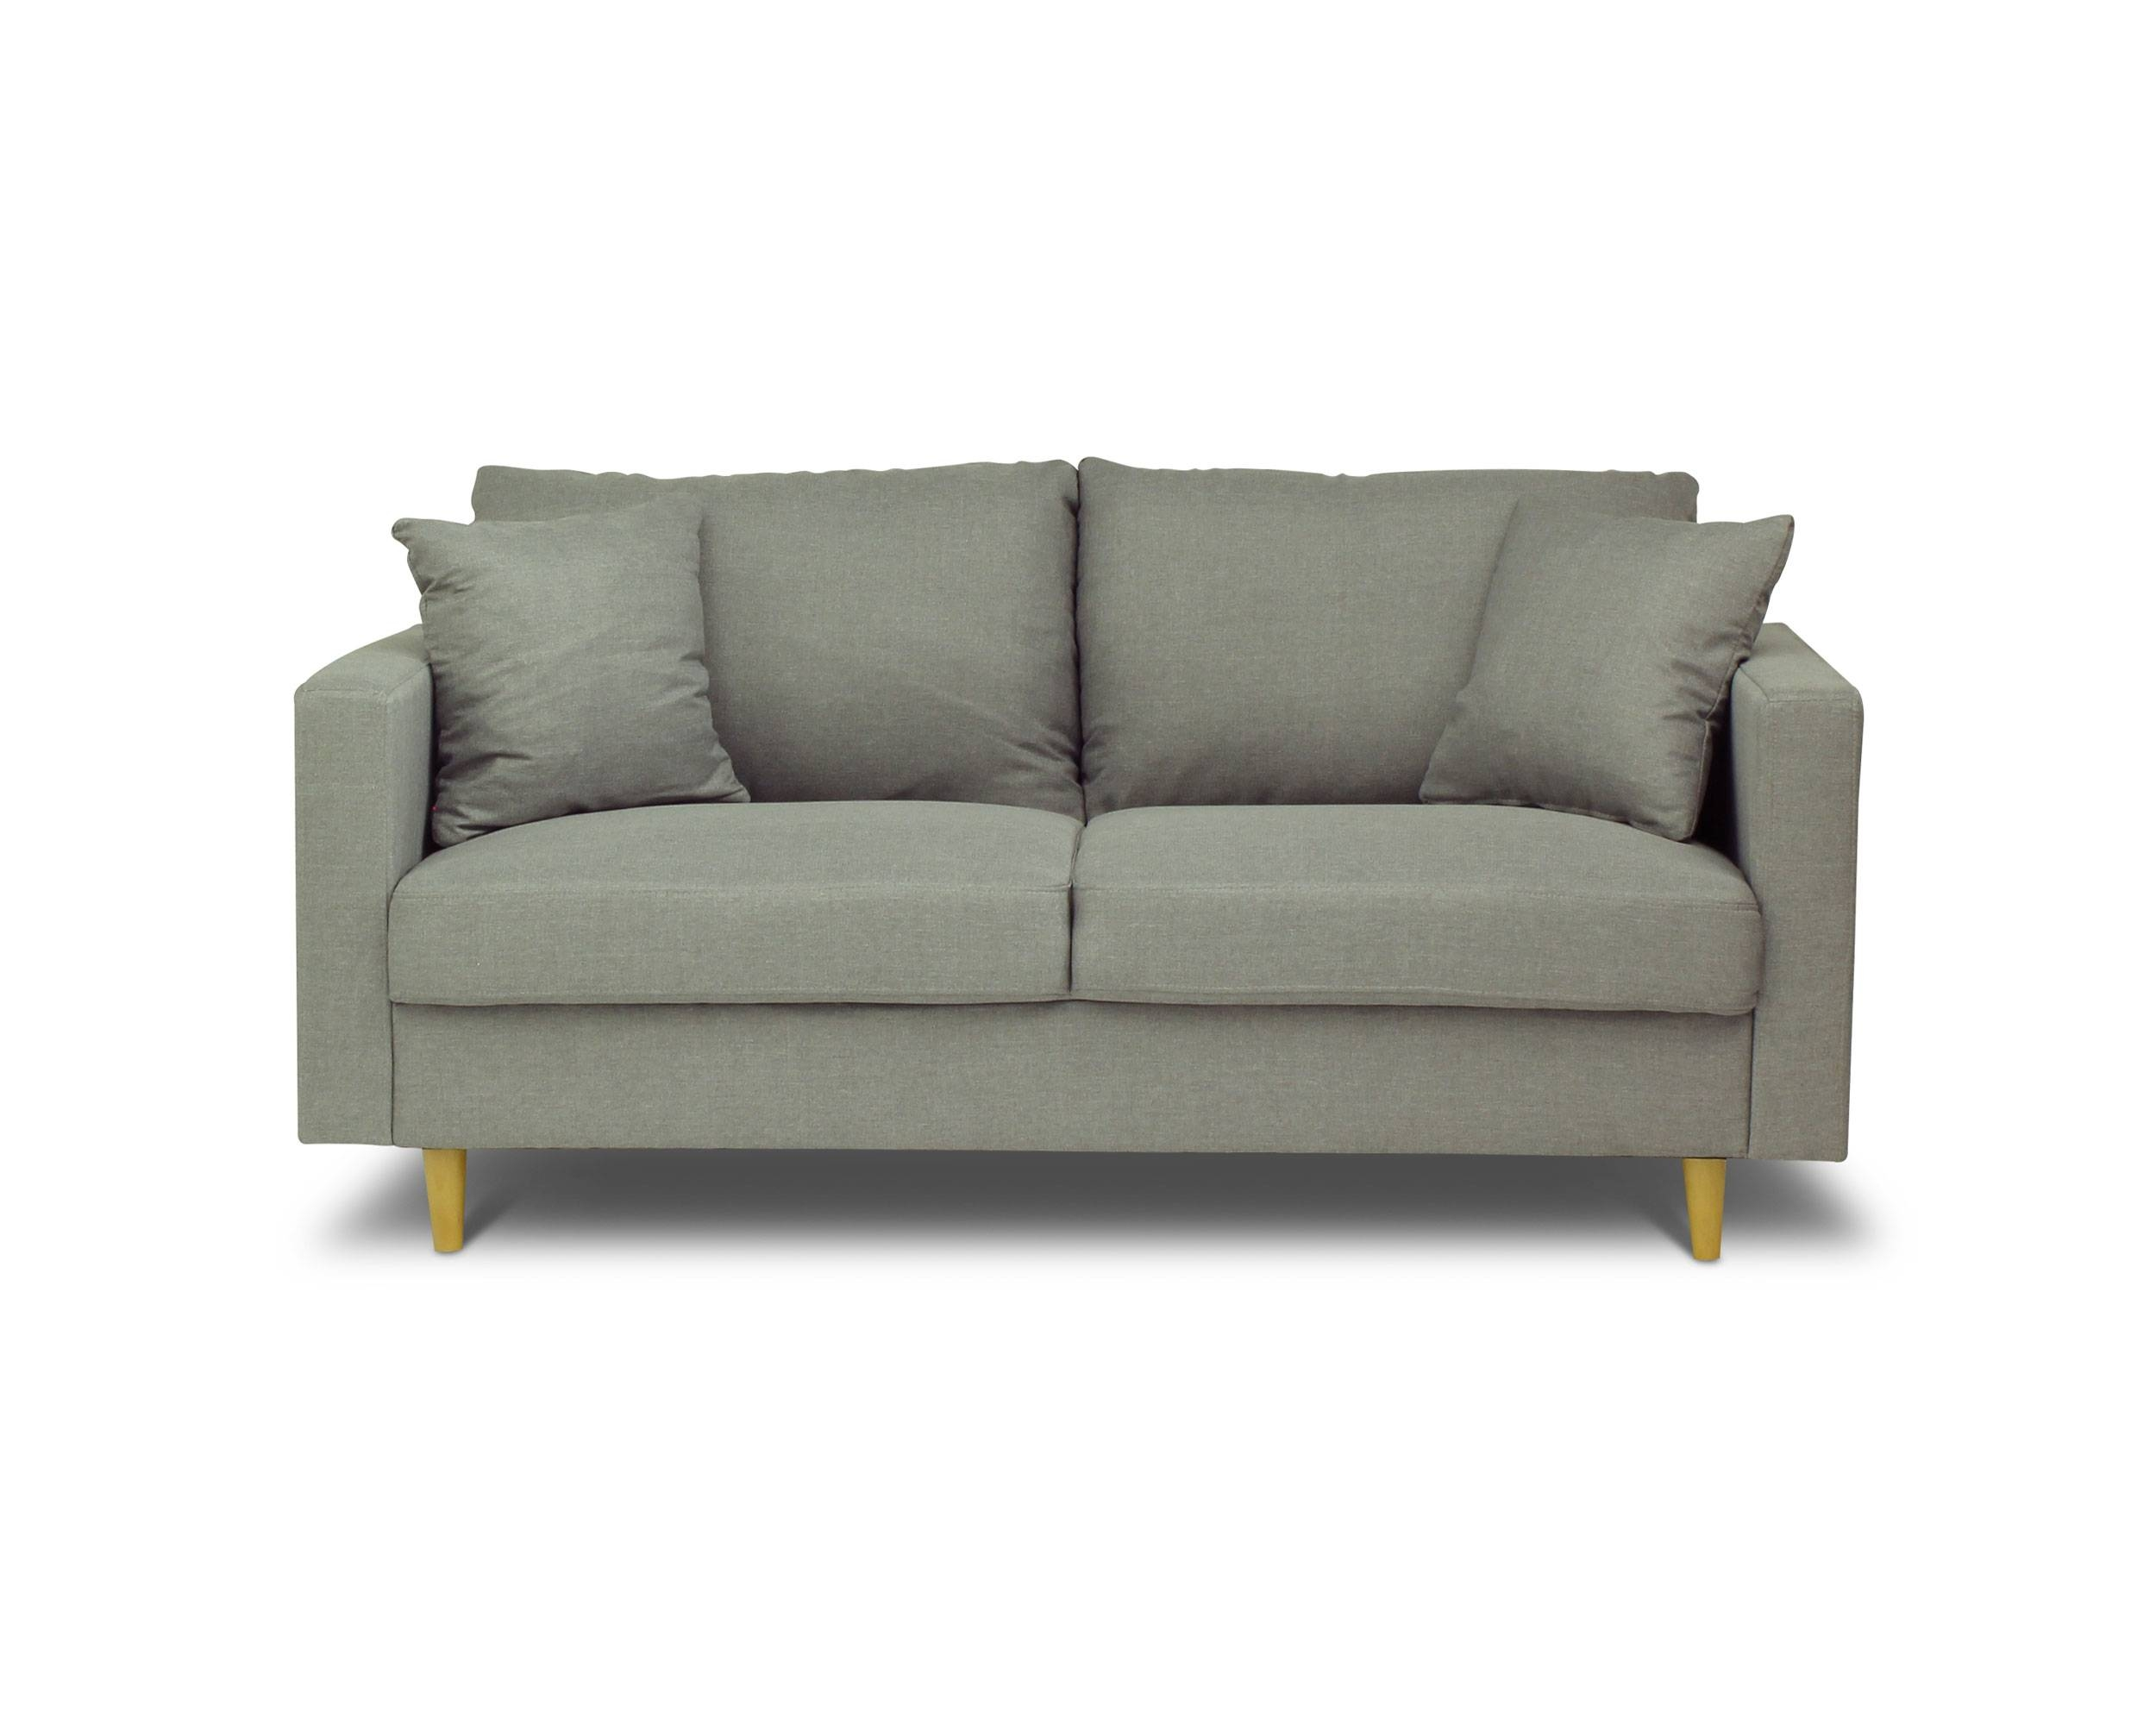 Copenhagen - 2 Seat Sofa | Loungelovers with 2 Seater Sofas (Image 10 of 30)